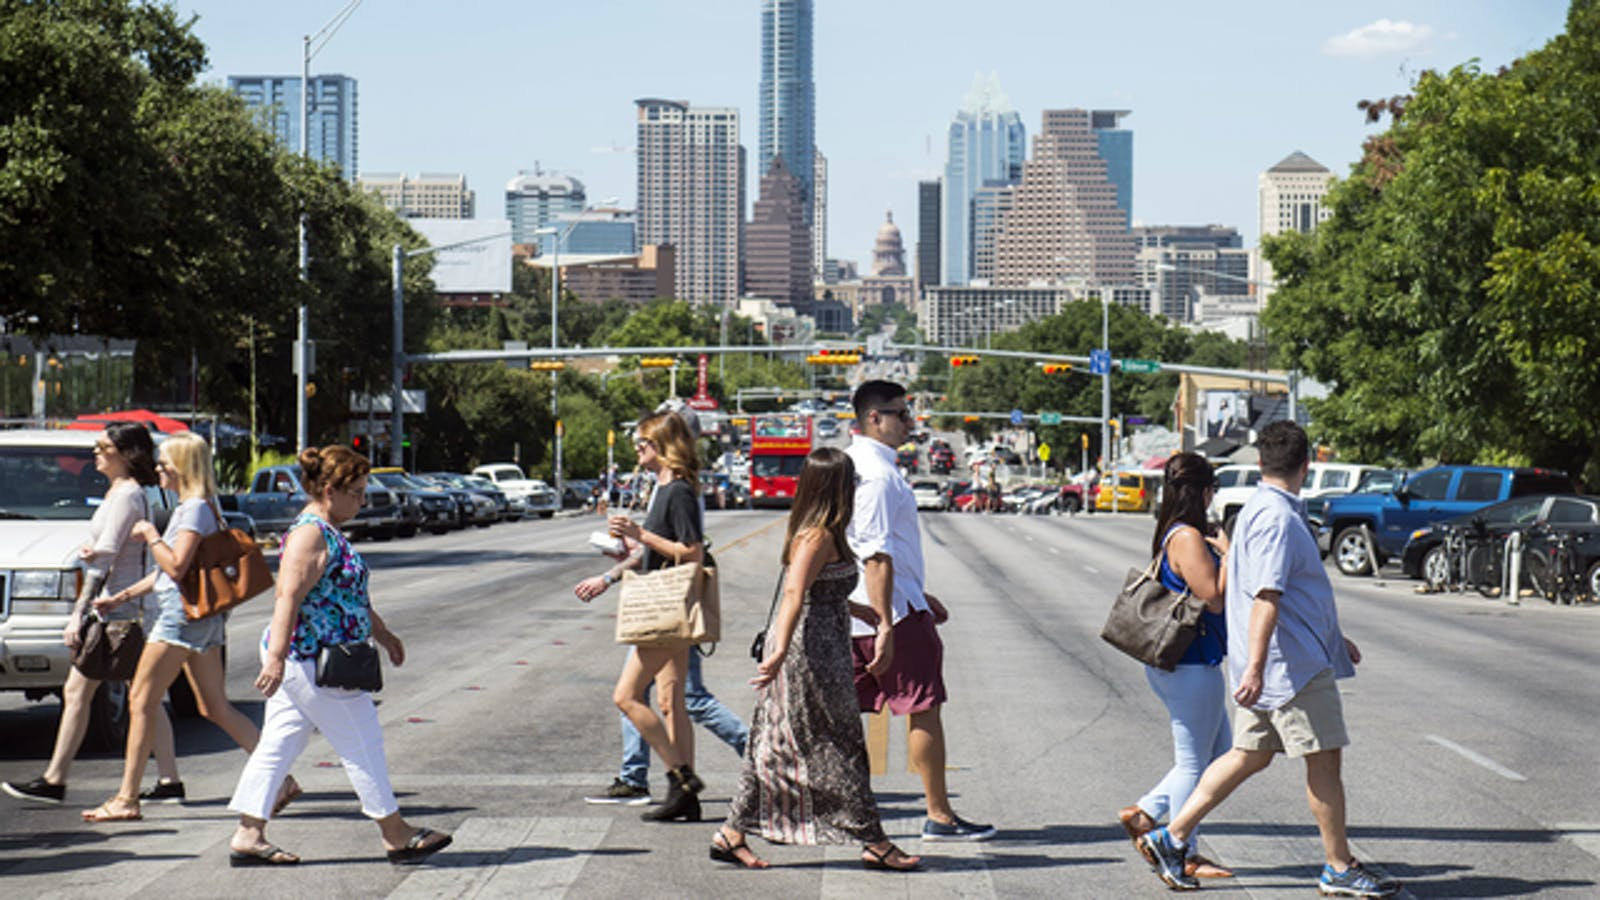 Vacation rental startups are snapping up apartment leases in places like Austin, Texas, above. Photo: Bloomberg